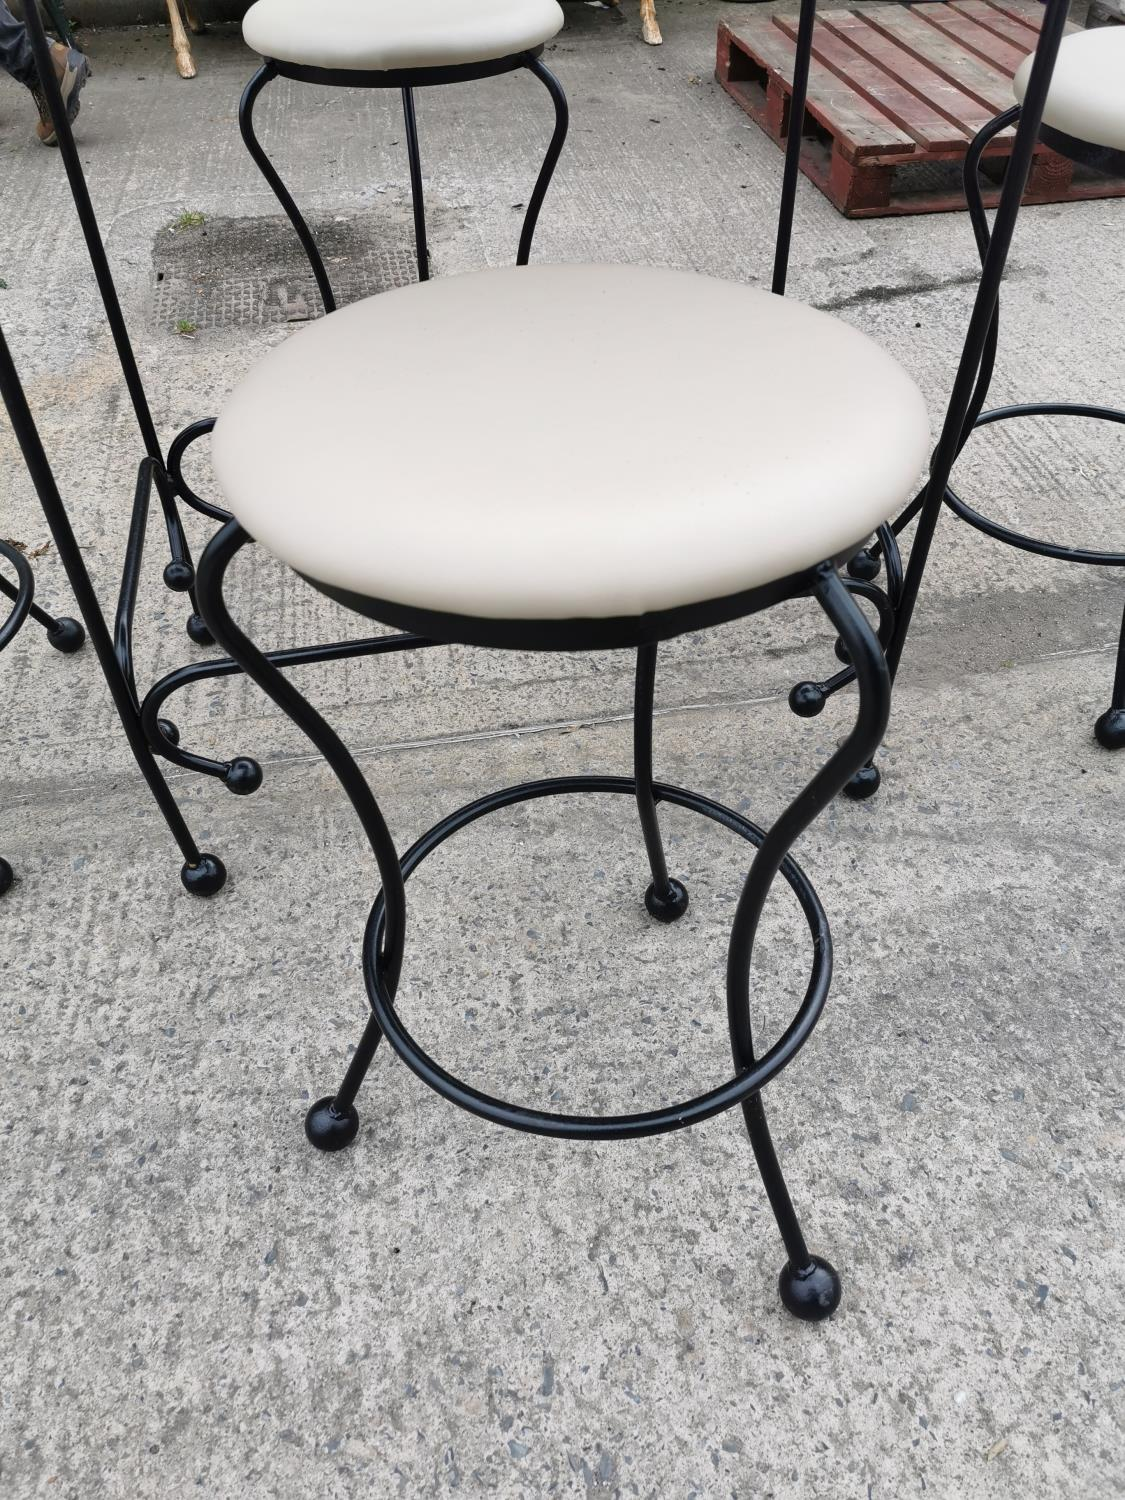 Wrought iron high garden table and four stools. - Image 3 of 3